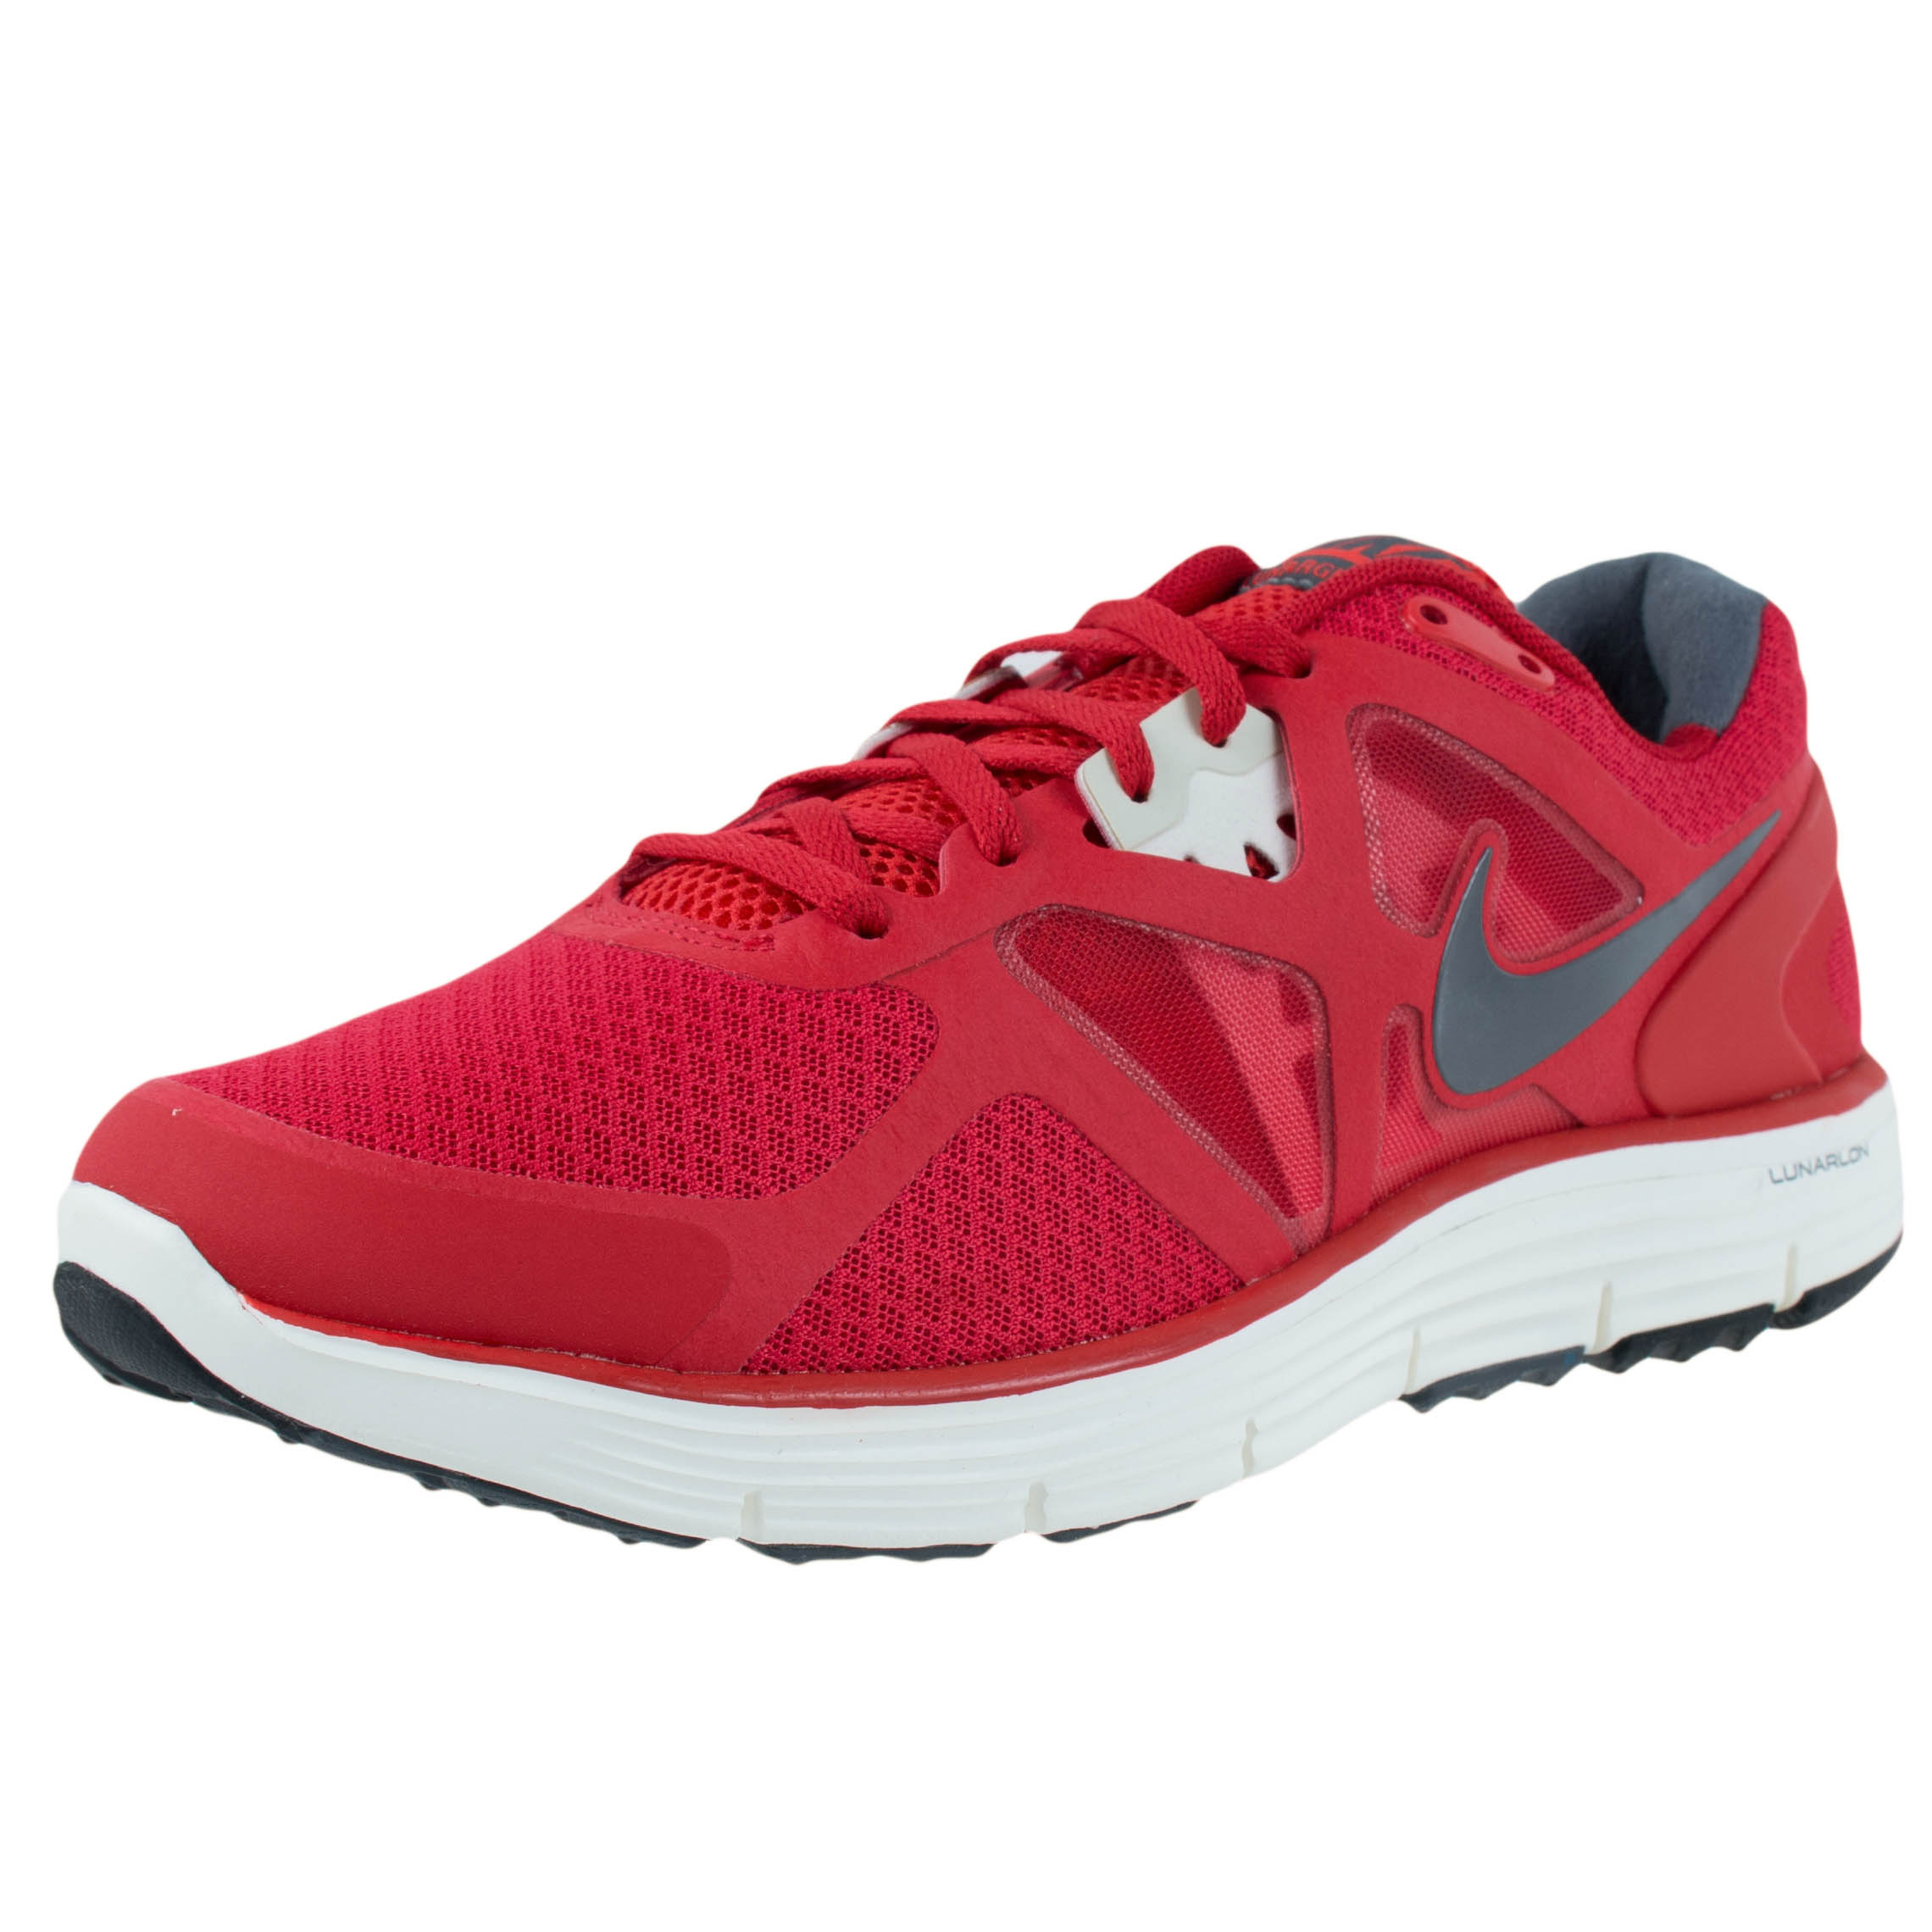 Nike LUNARGLIDE 3 RUNNING SHOES UNIVERSITY RED DARK GREY ...